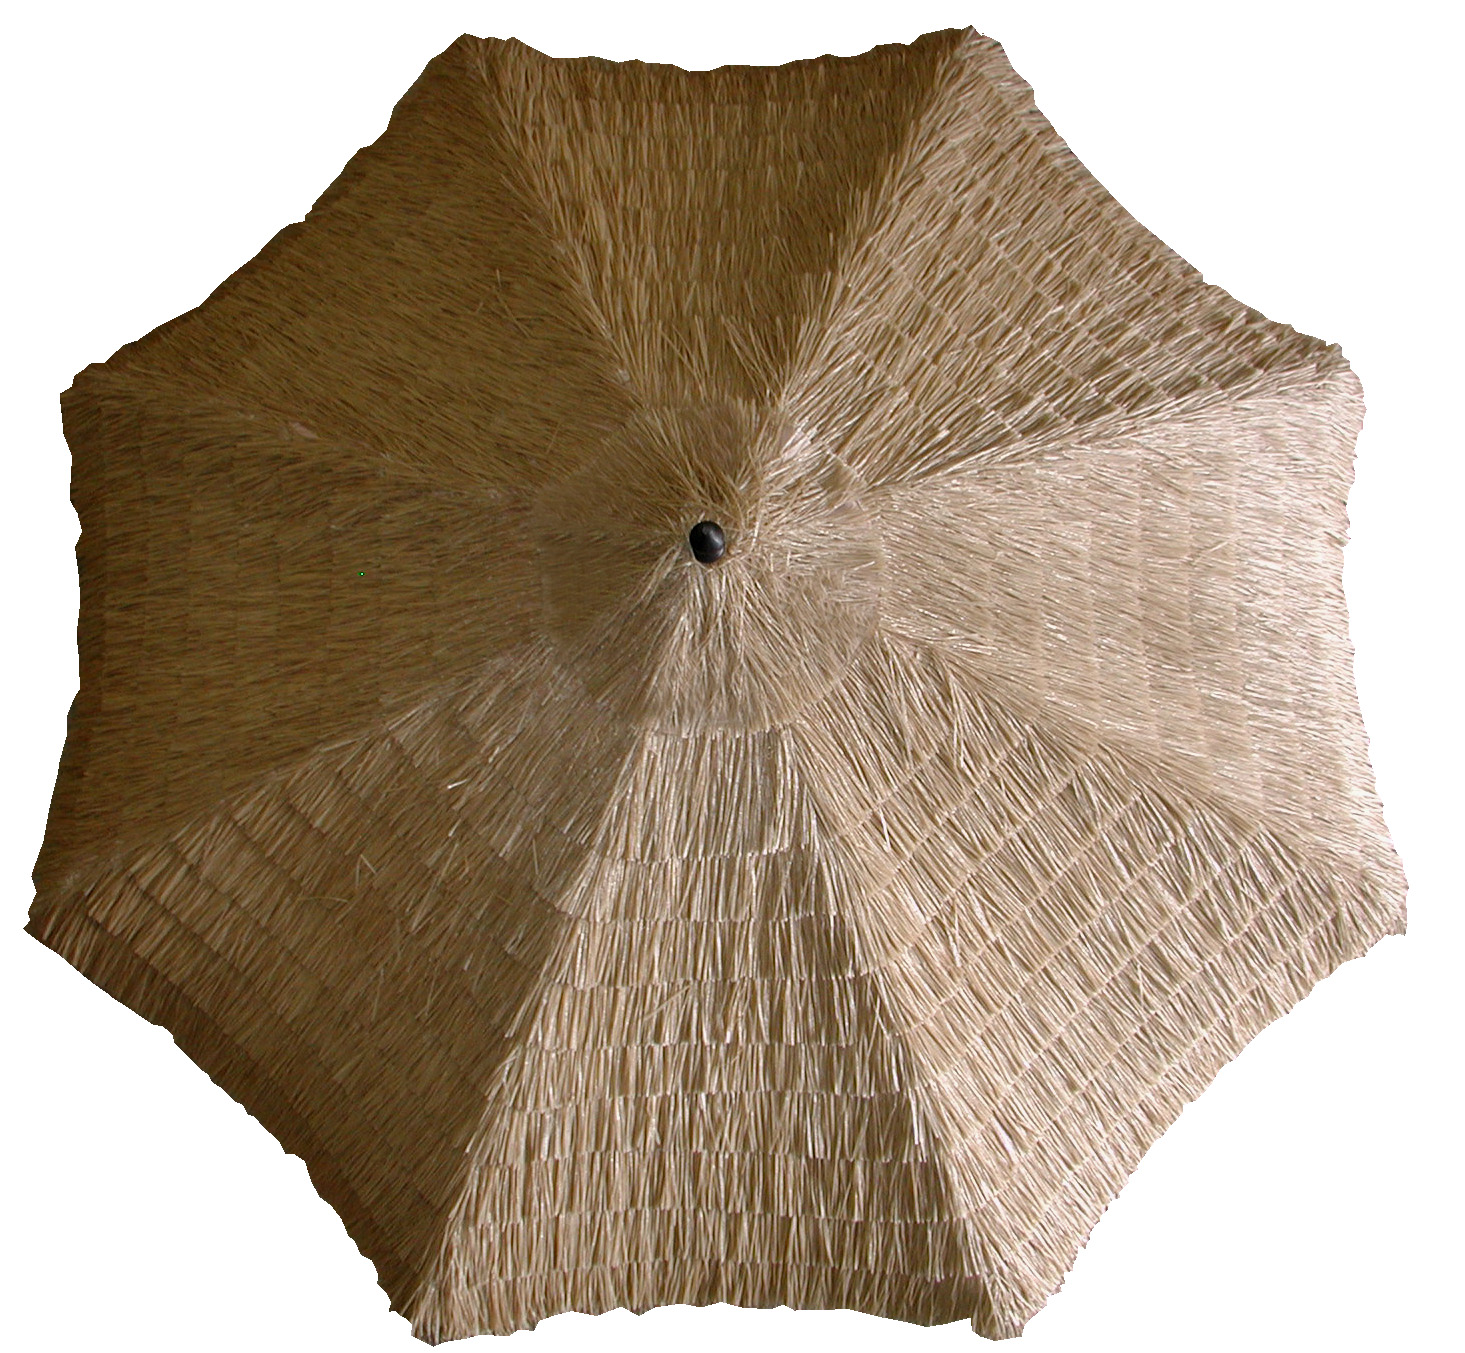 Galtech 9 thatch replacement umbrella canopy